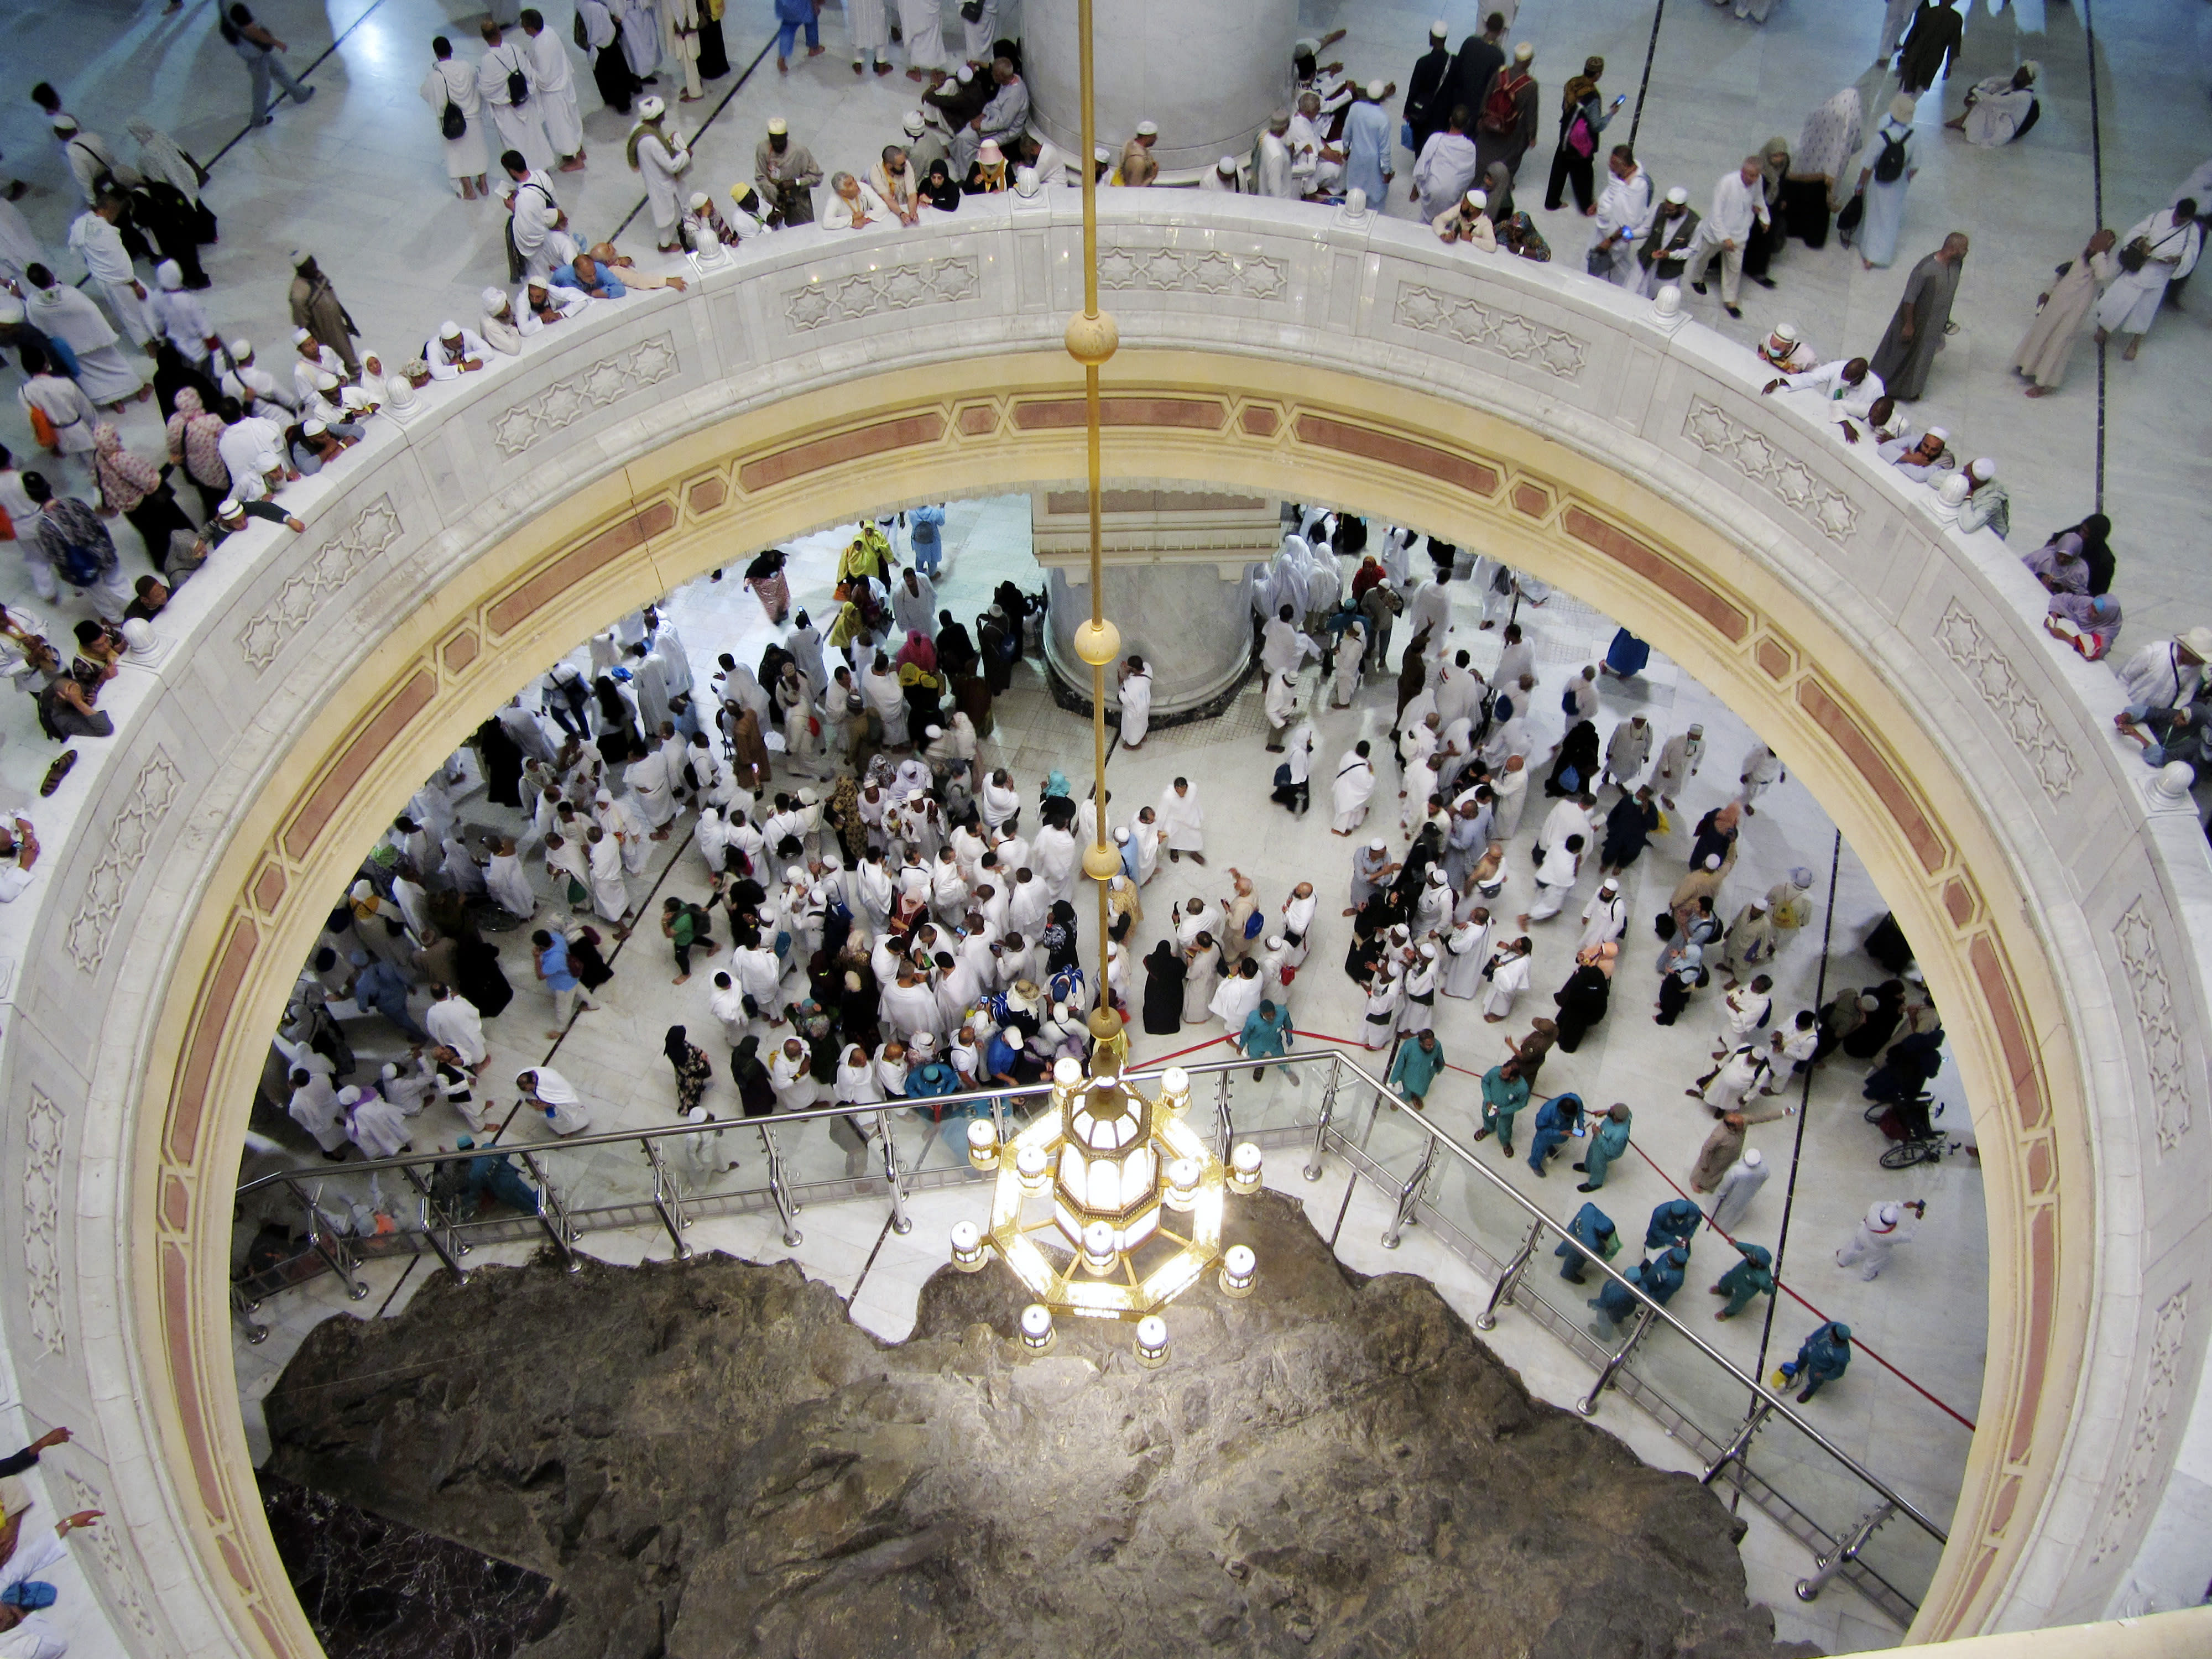 """FILE - In this Aug. 9, 2019 file photo pilgrims pray near the Al-Safa mountain, at the Grand Mosque, during the Hajj pilgrimage in the Muslim holy city of Mecca, Saudi Arabia. Saudi Arabia said Tuesday, June 22, 2020 this year's hajj will not be canceled, but that due to the coronavirus only """"very limited numbers"""" of people will be allowed to perform the pilgrimage that traditionally draws around 2 million people from around the world to Mecca once a year. (AP Photo/Amr Nabil, file)"""